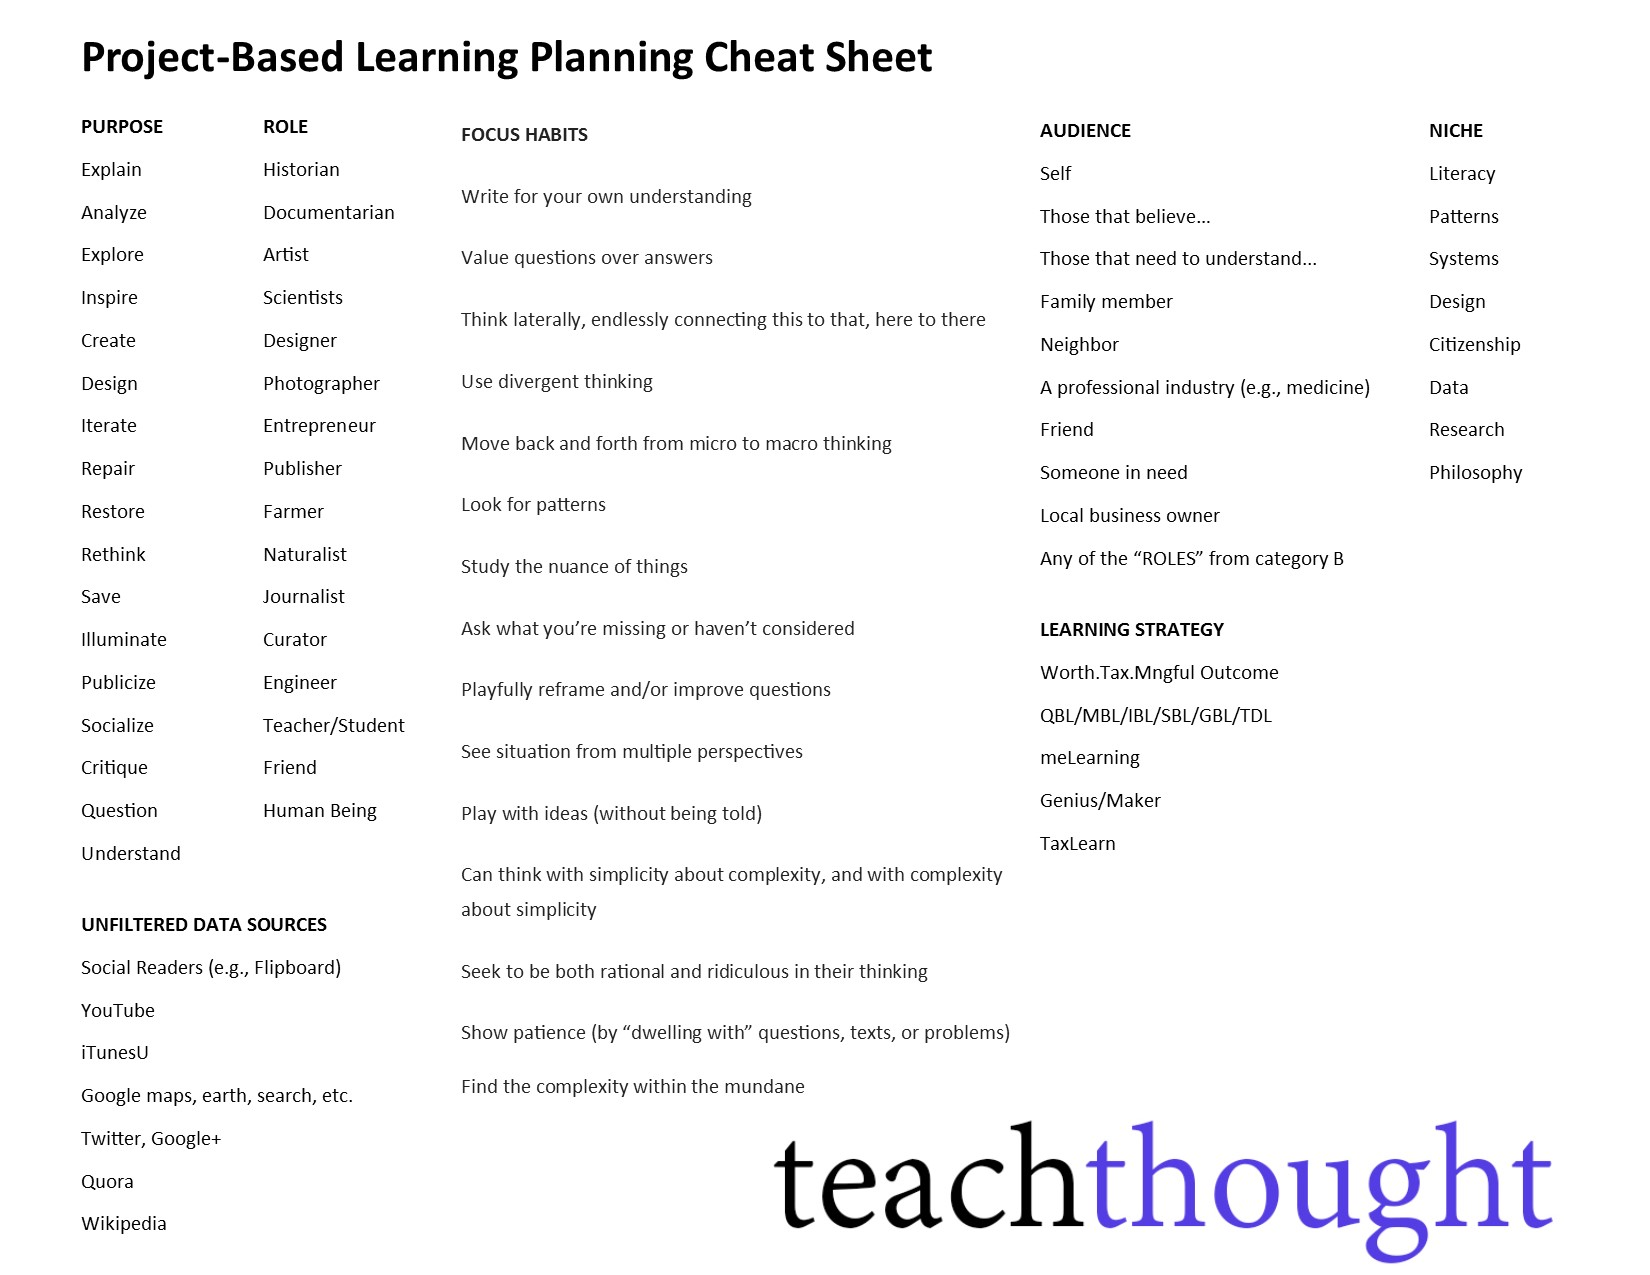 PBL-planning-cheat-sheet